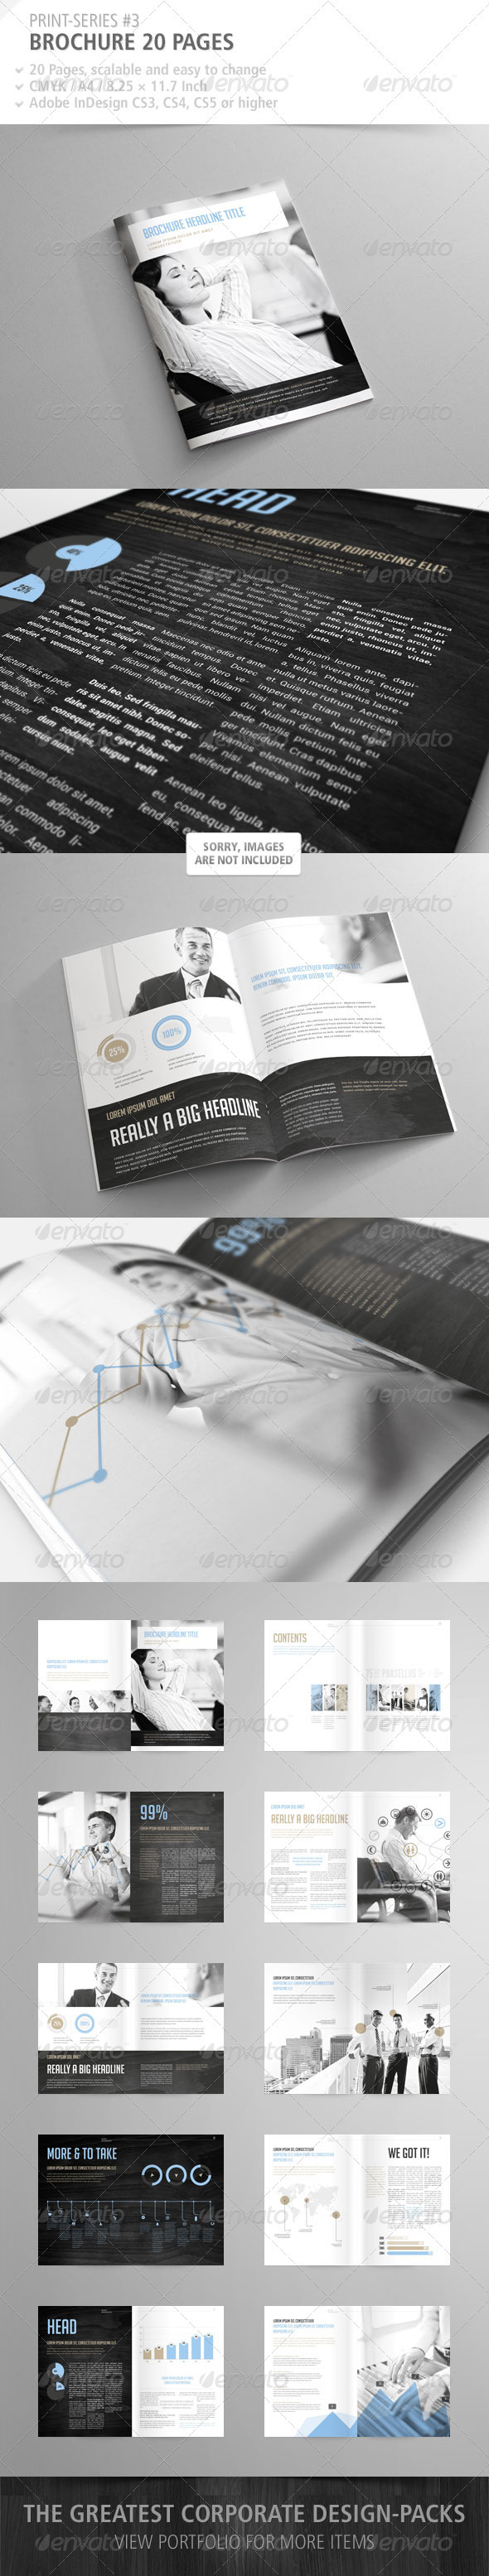 Brochure 20 Pages Print-Series #3 - Corporate Brochures